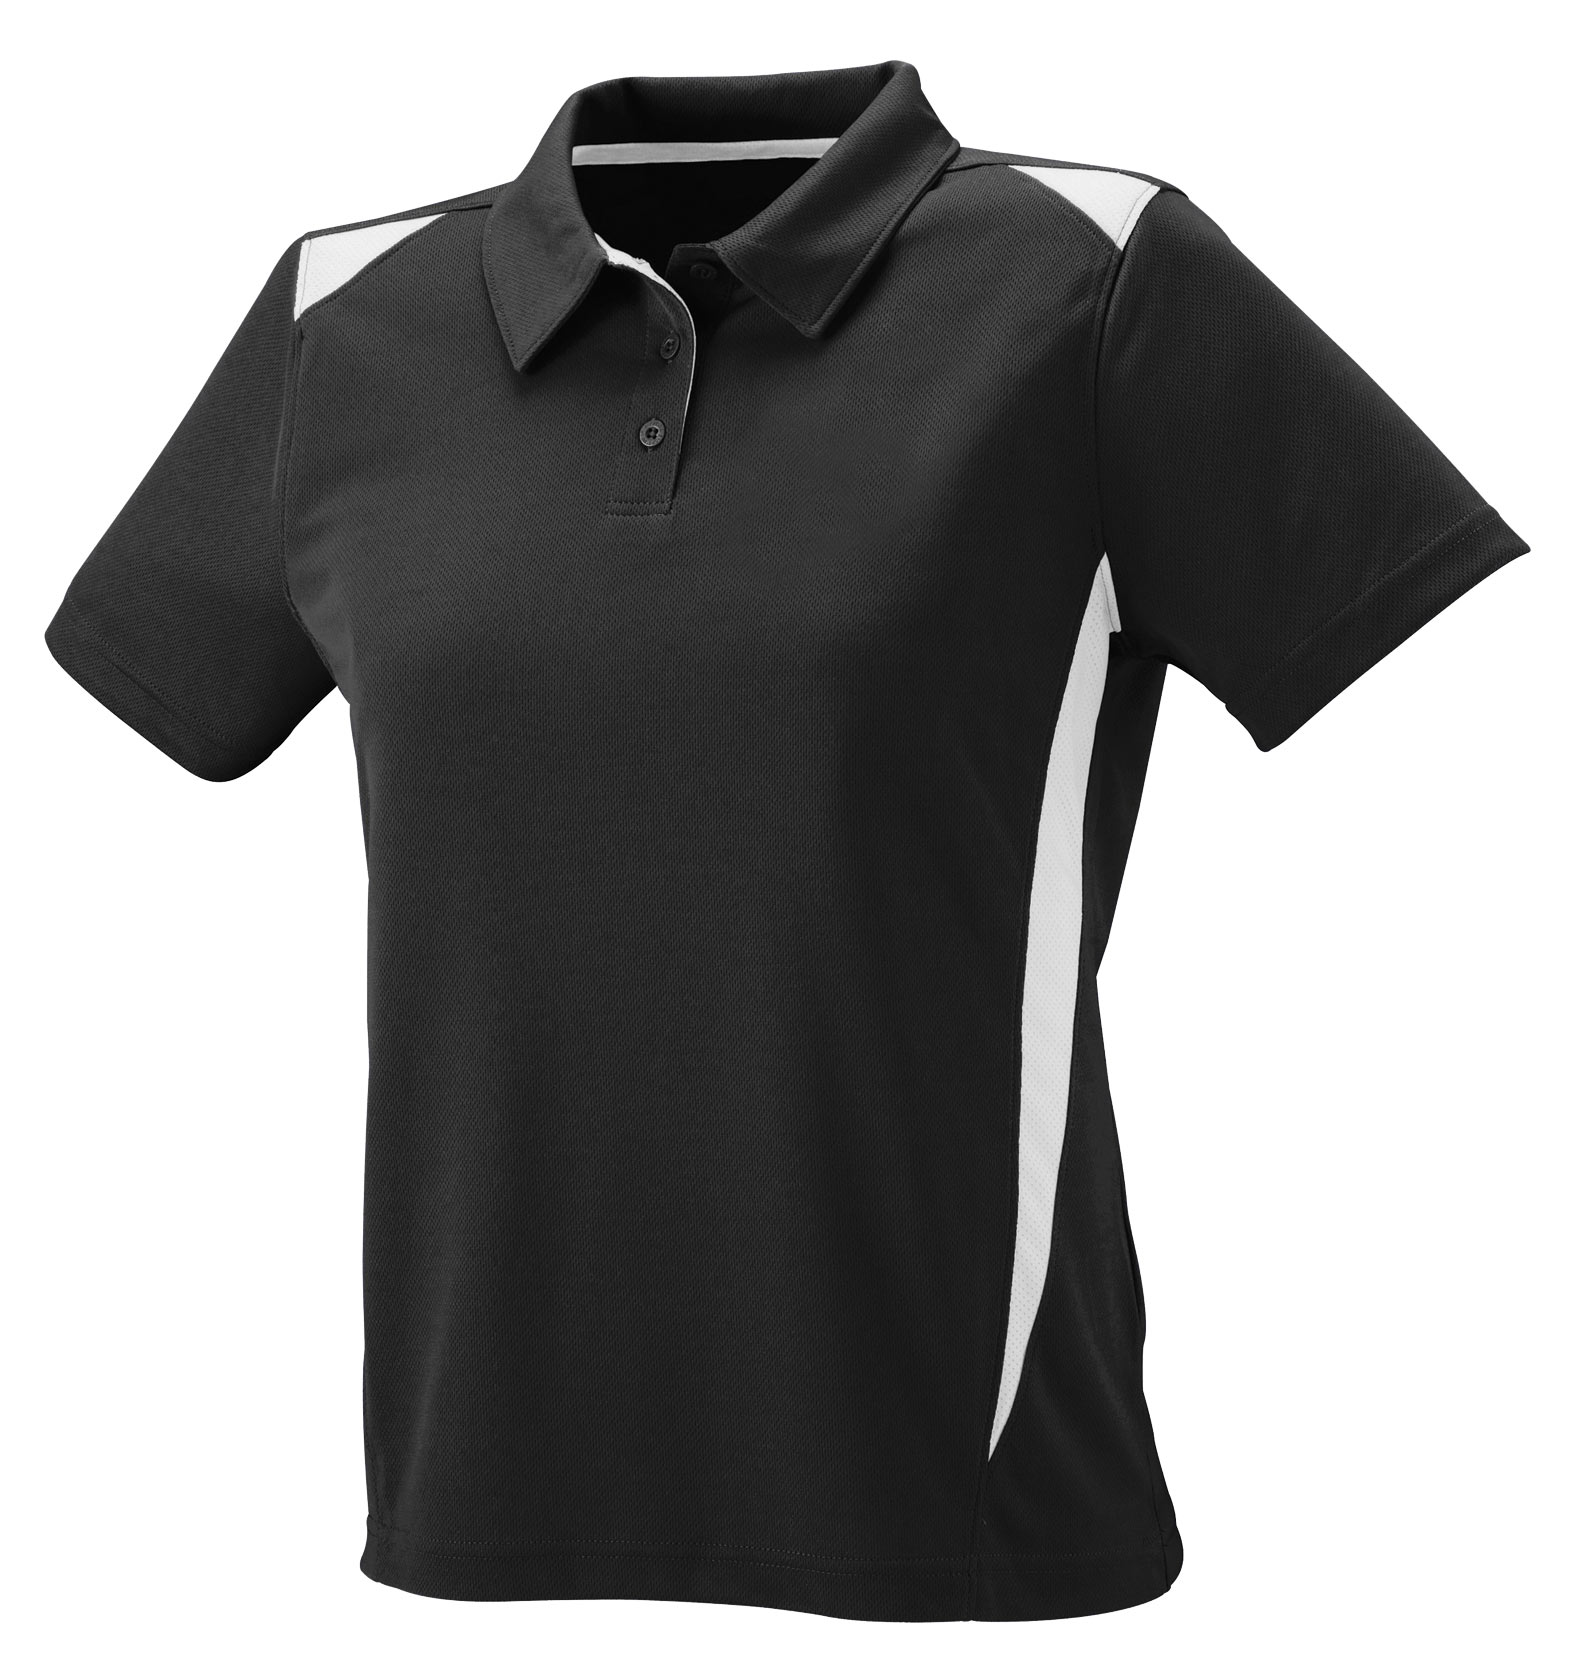 Ladies Premier Sport Shirt